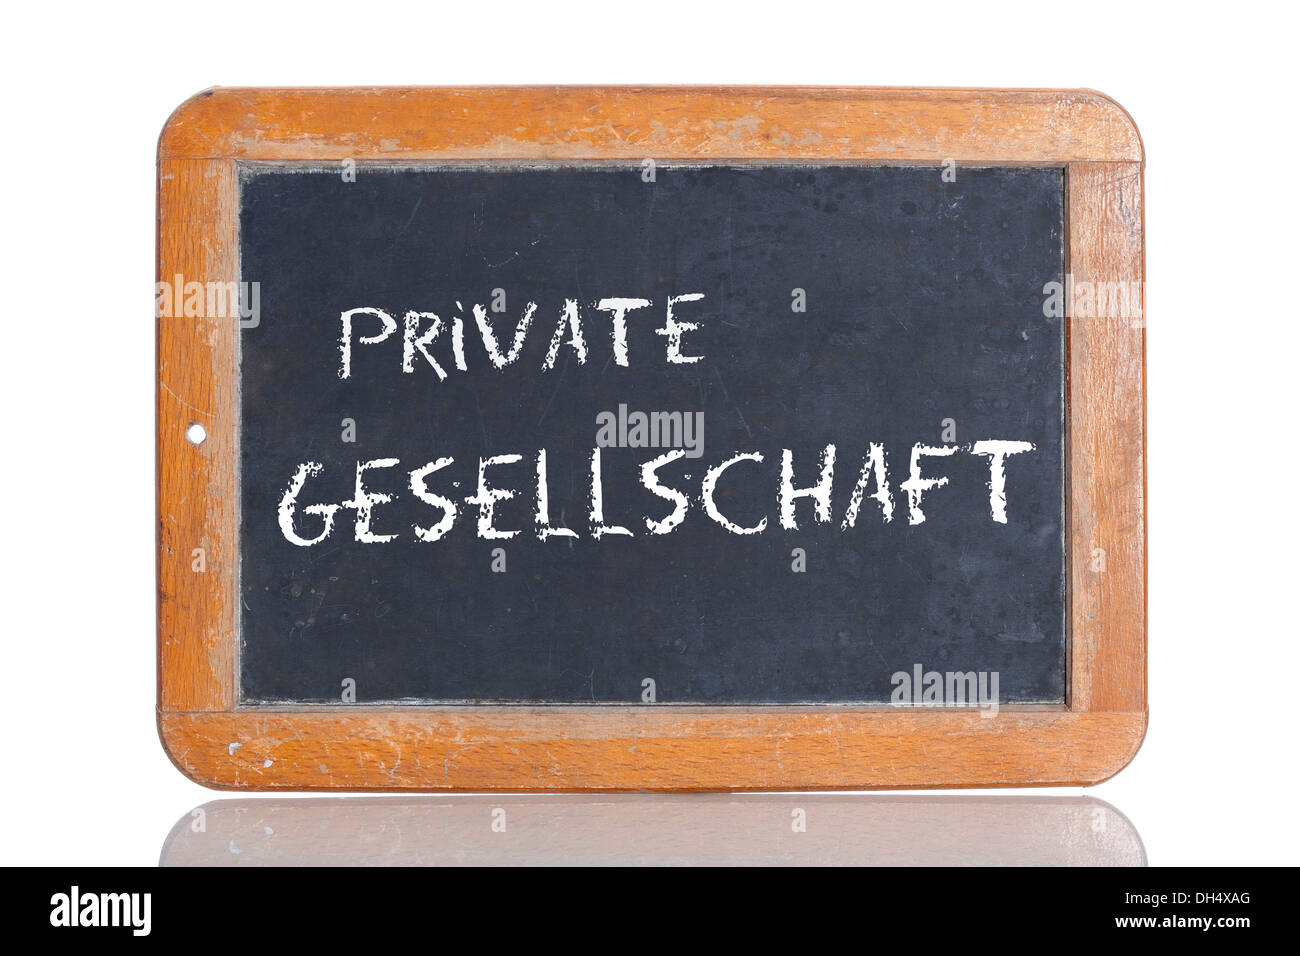 Old chalkboard, lettering 'PRIVATE GESELLSCHAFT', German for 'PRIVATE FUNCTION' - Stock Image